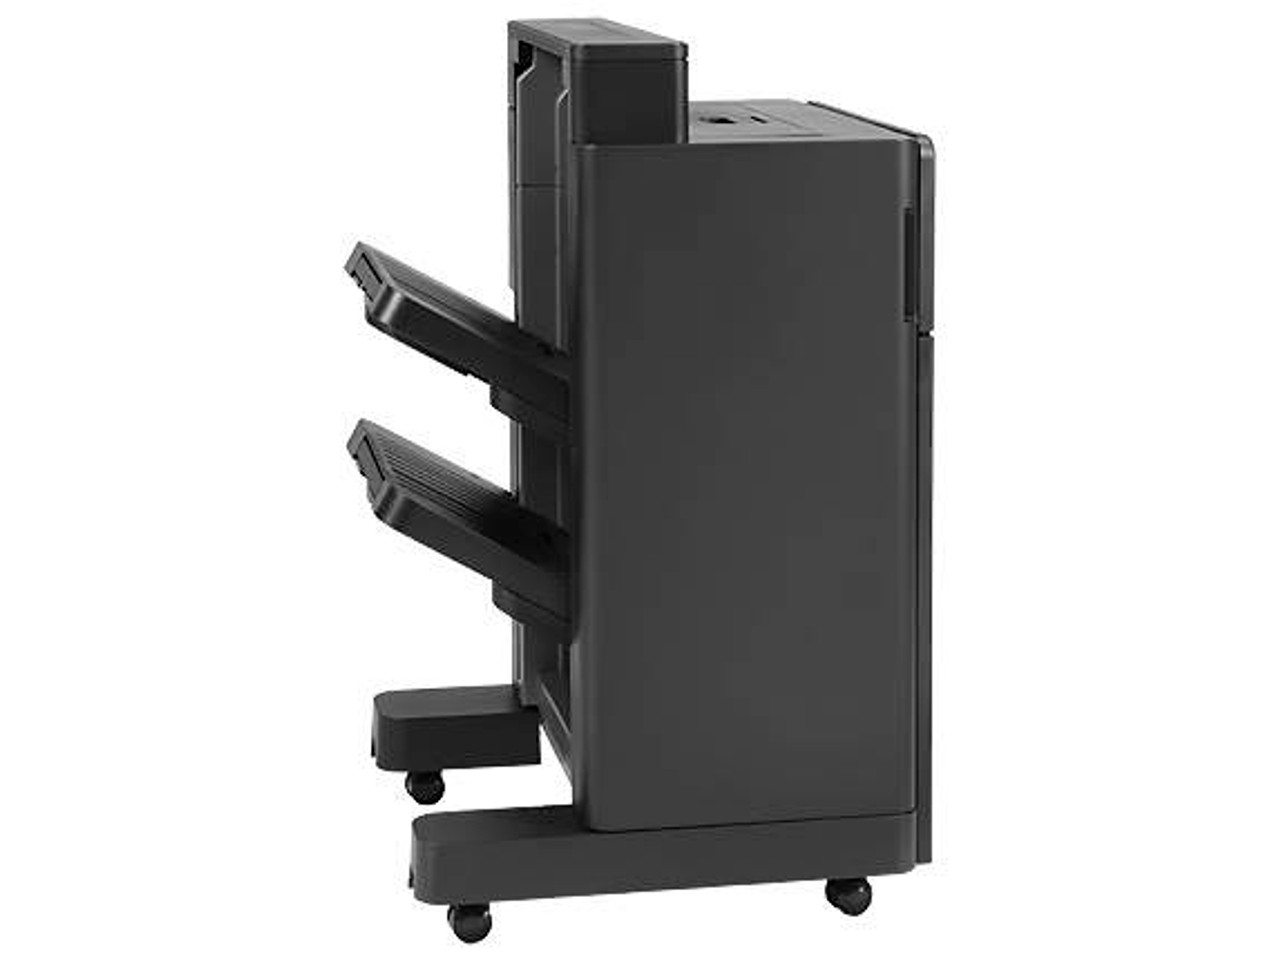 Image for HP A2W80A LaserJet Stapler/Stacker for HP Printers CX Computer Superstore